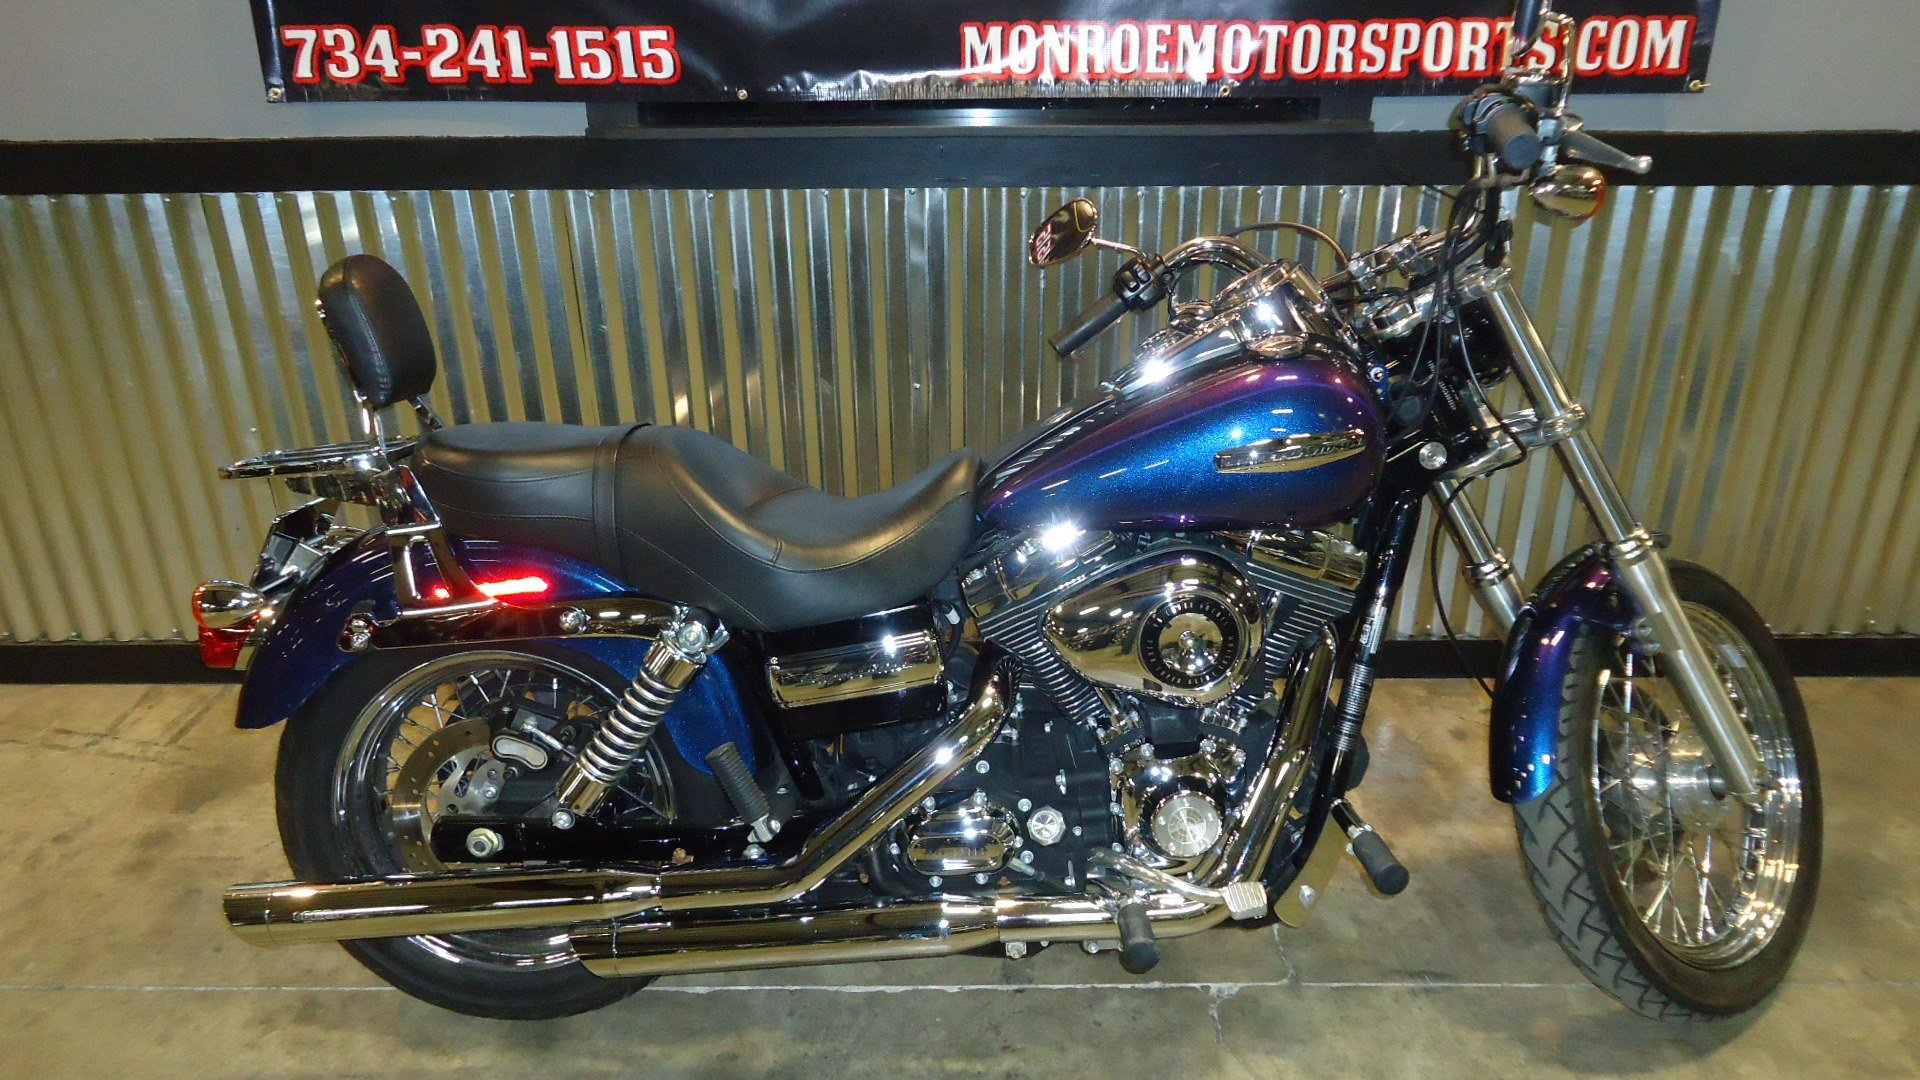 2010 Dyna Super Glide Custom